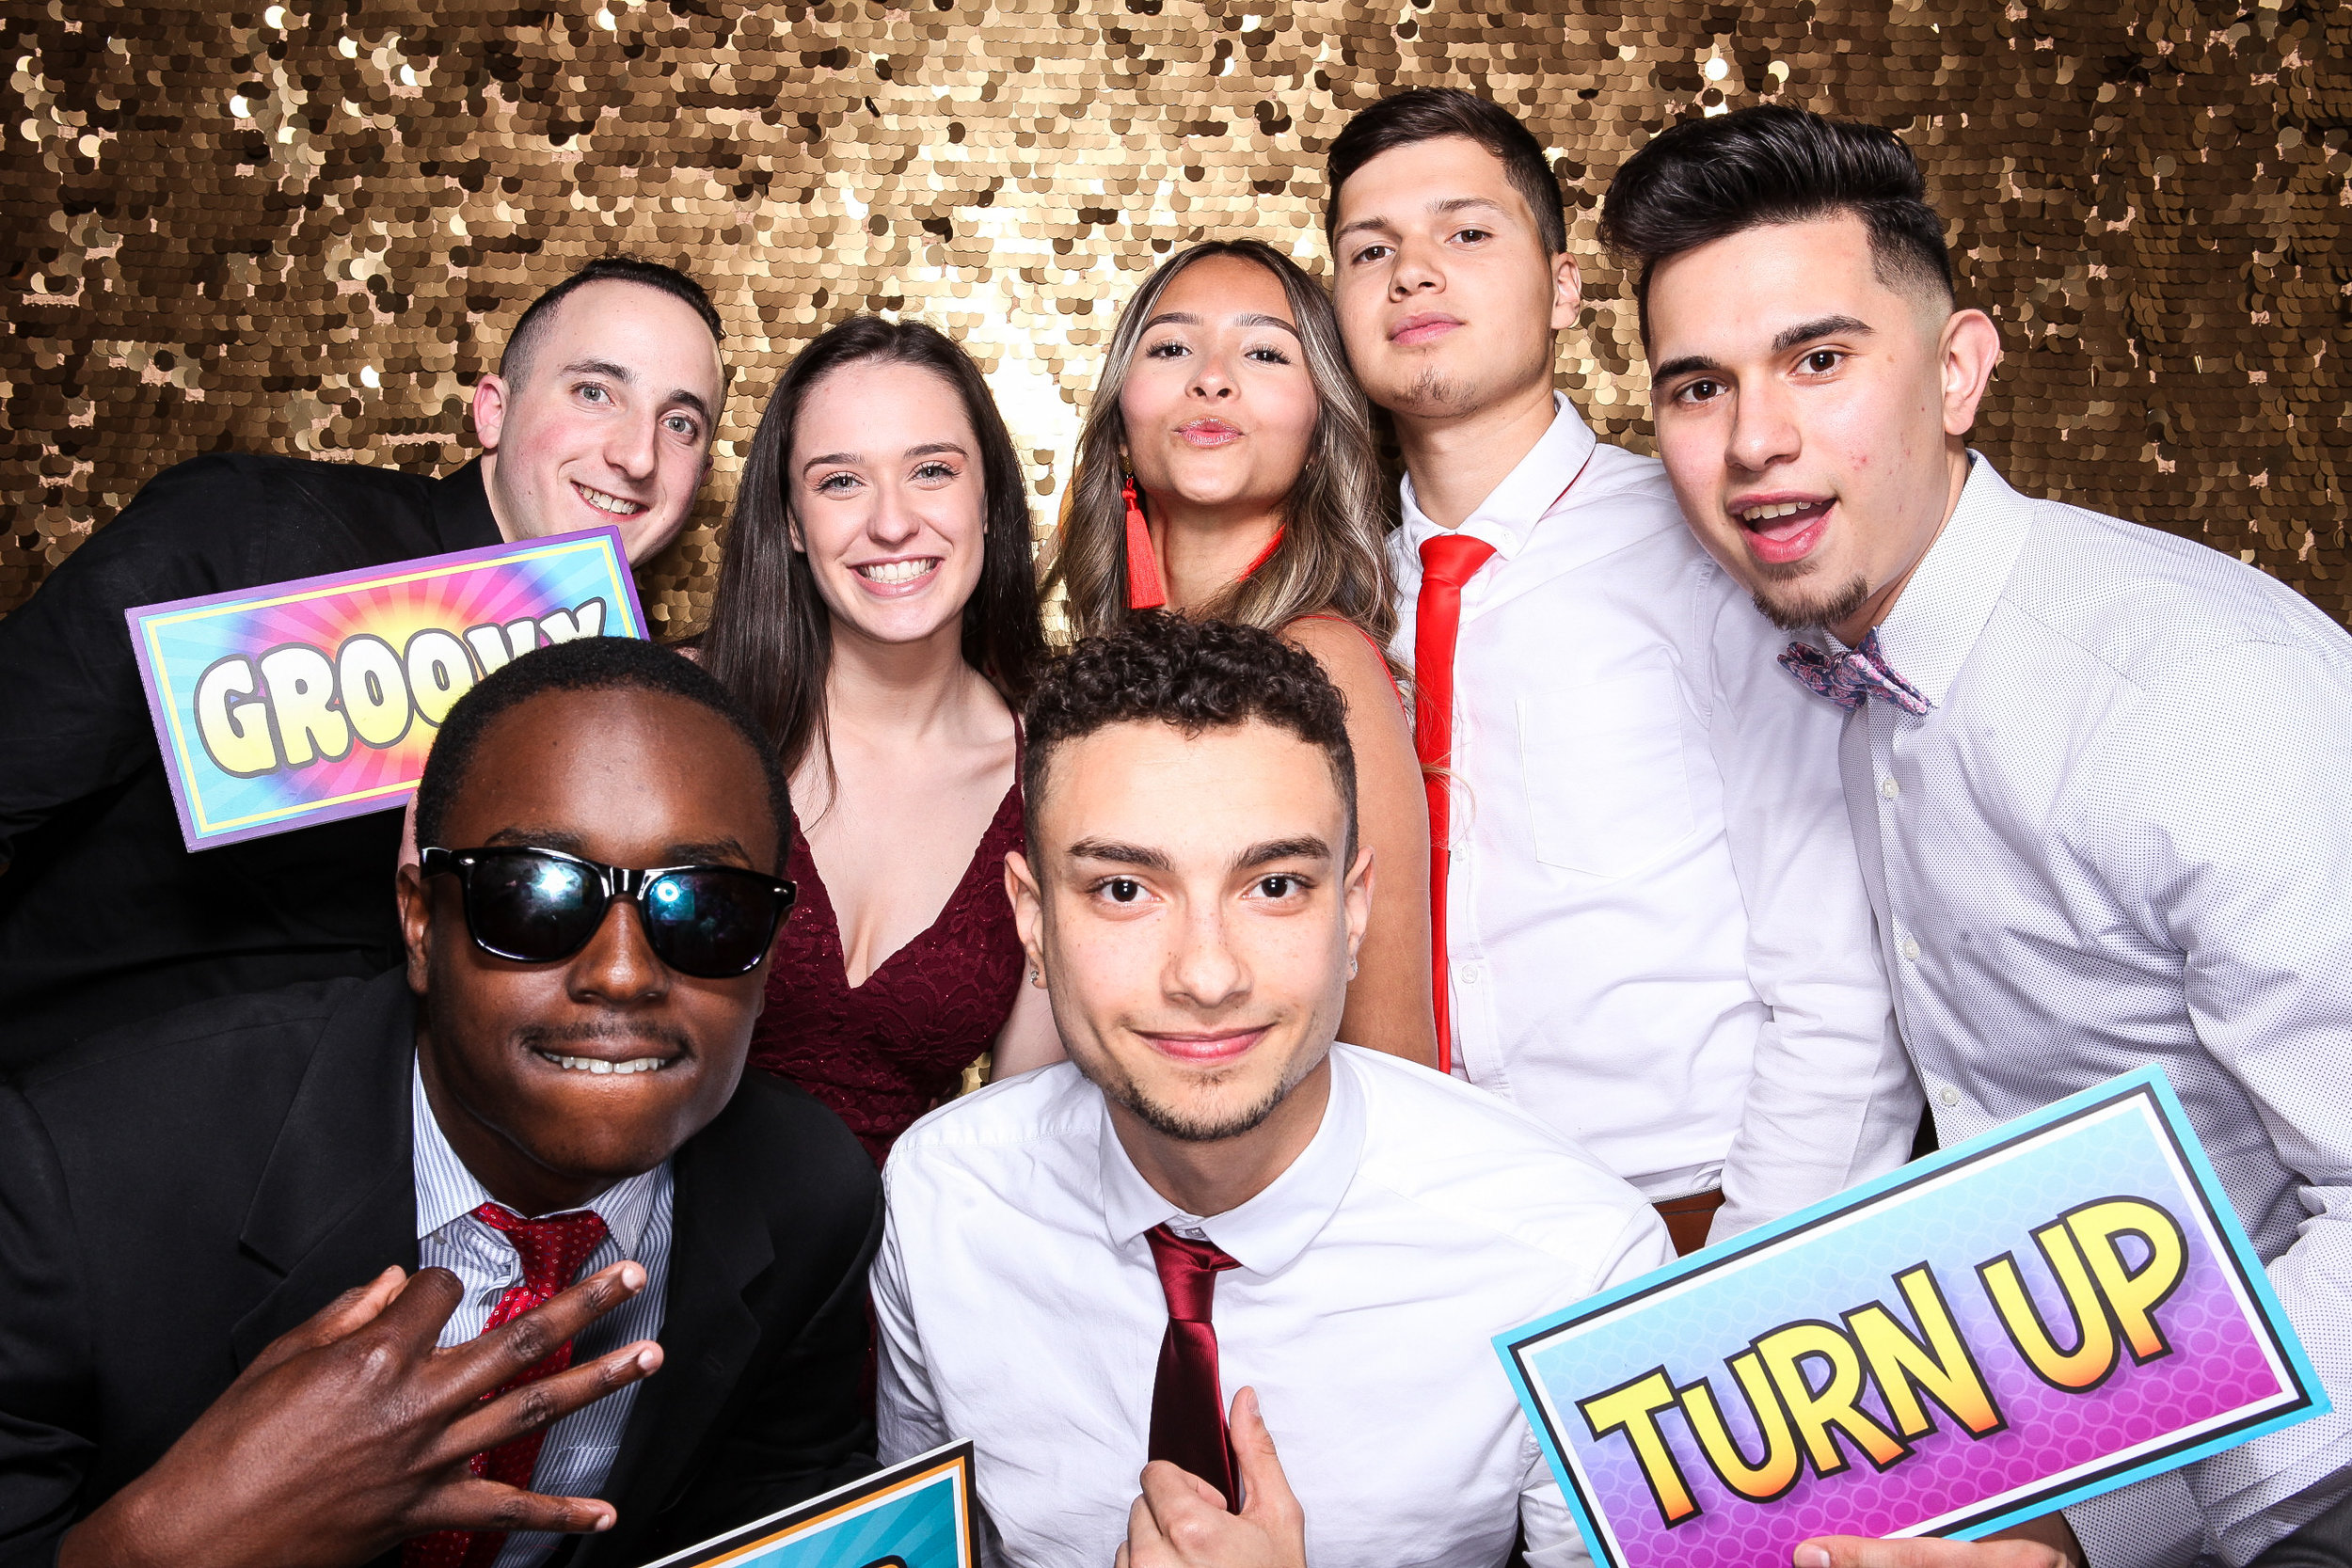 20190503_Adelphi_Senior_Formal-110.jpg